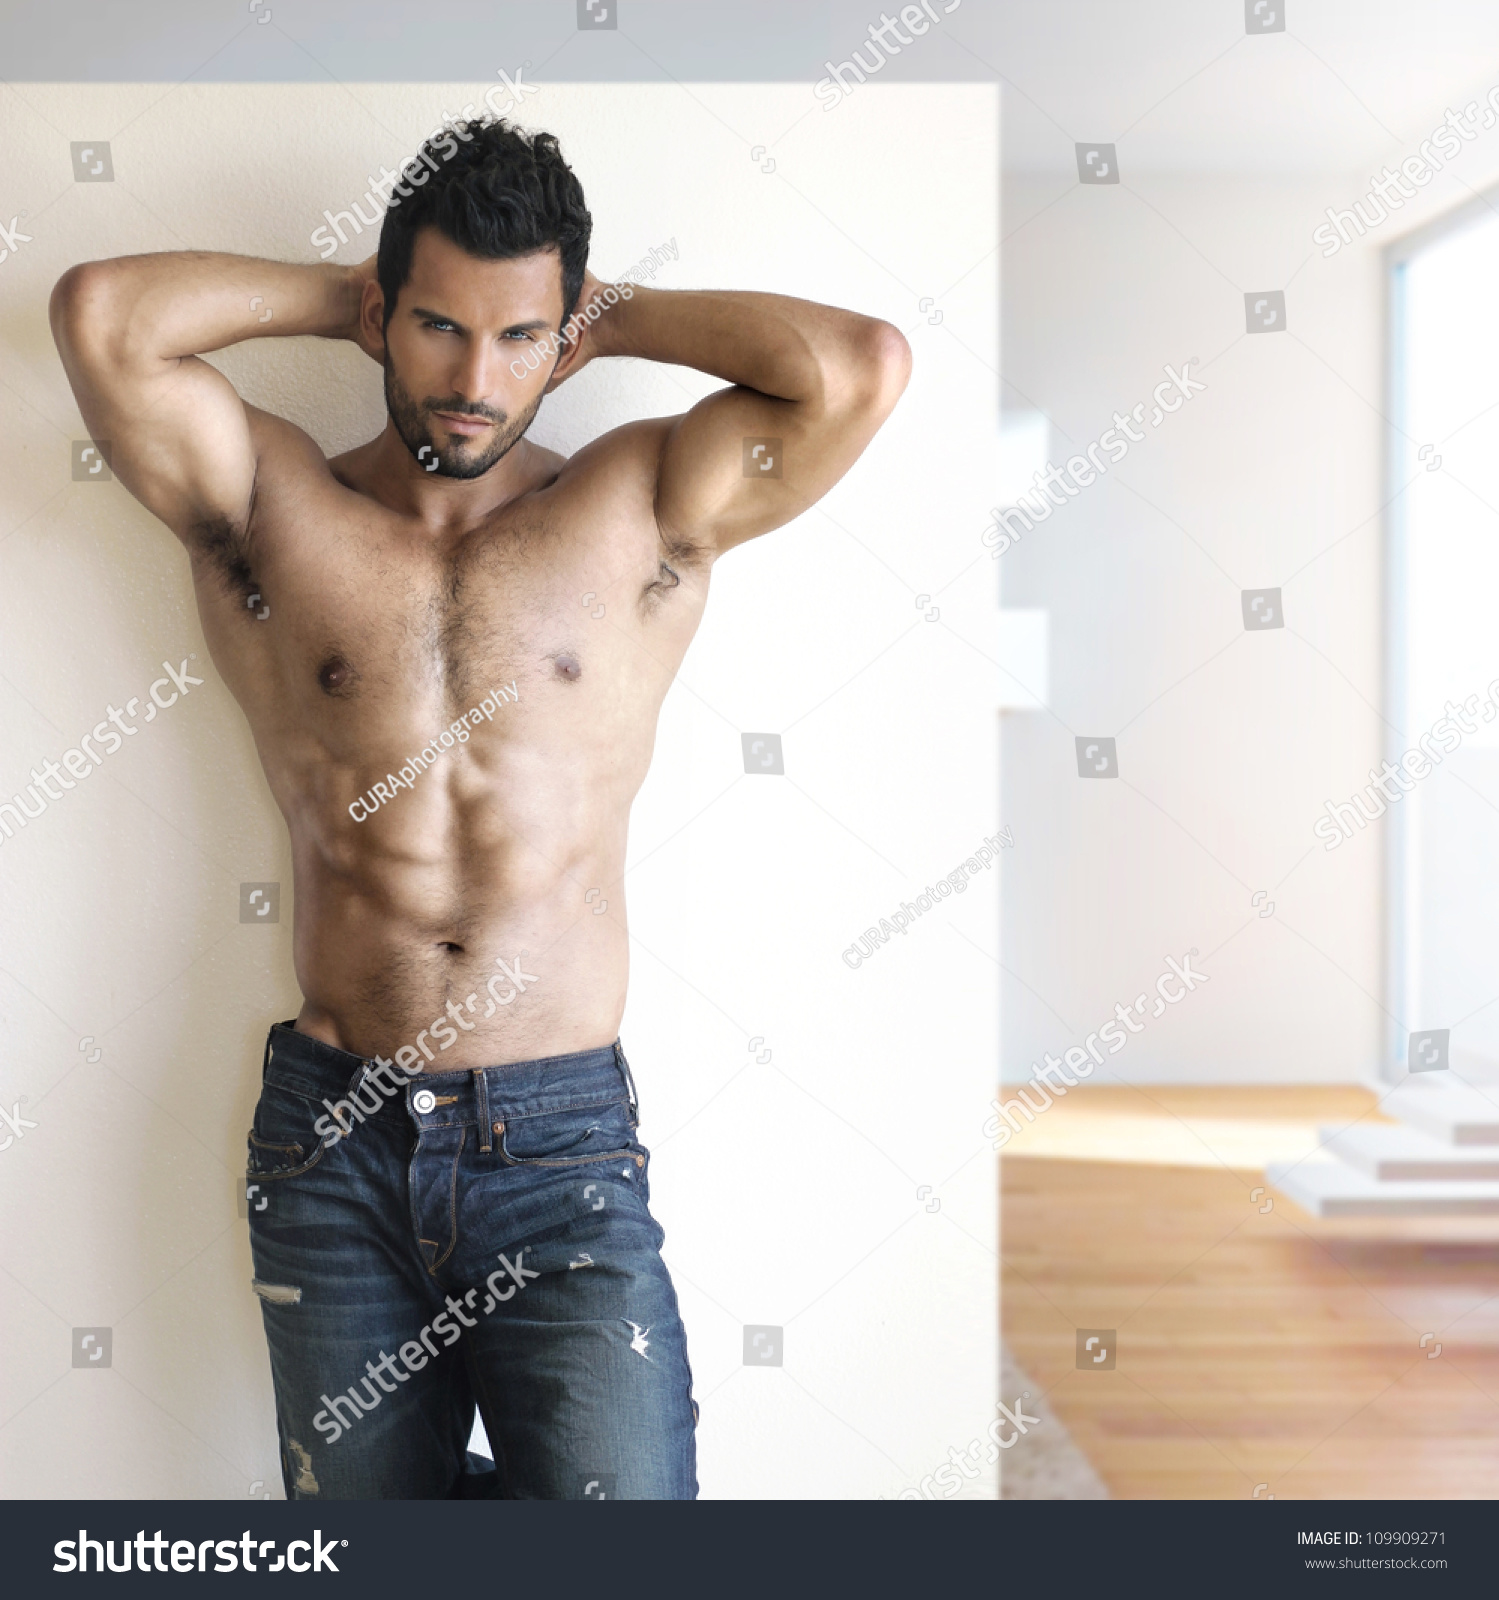 sexy naked male body photos